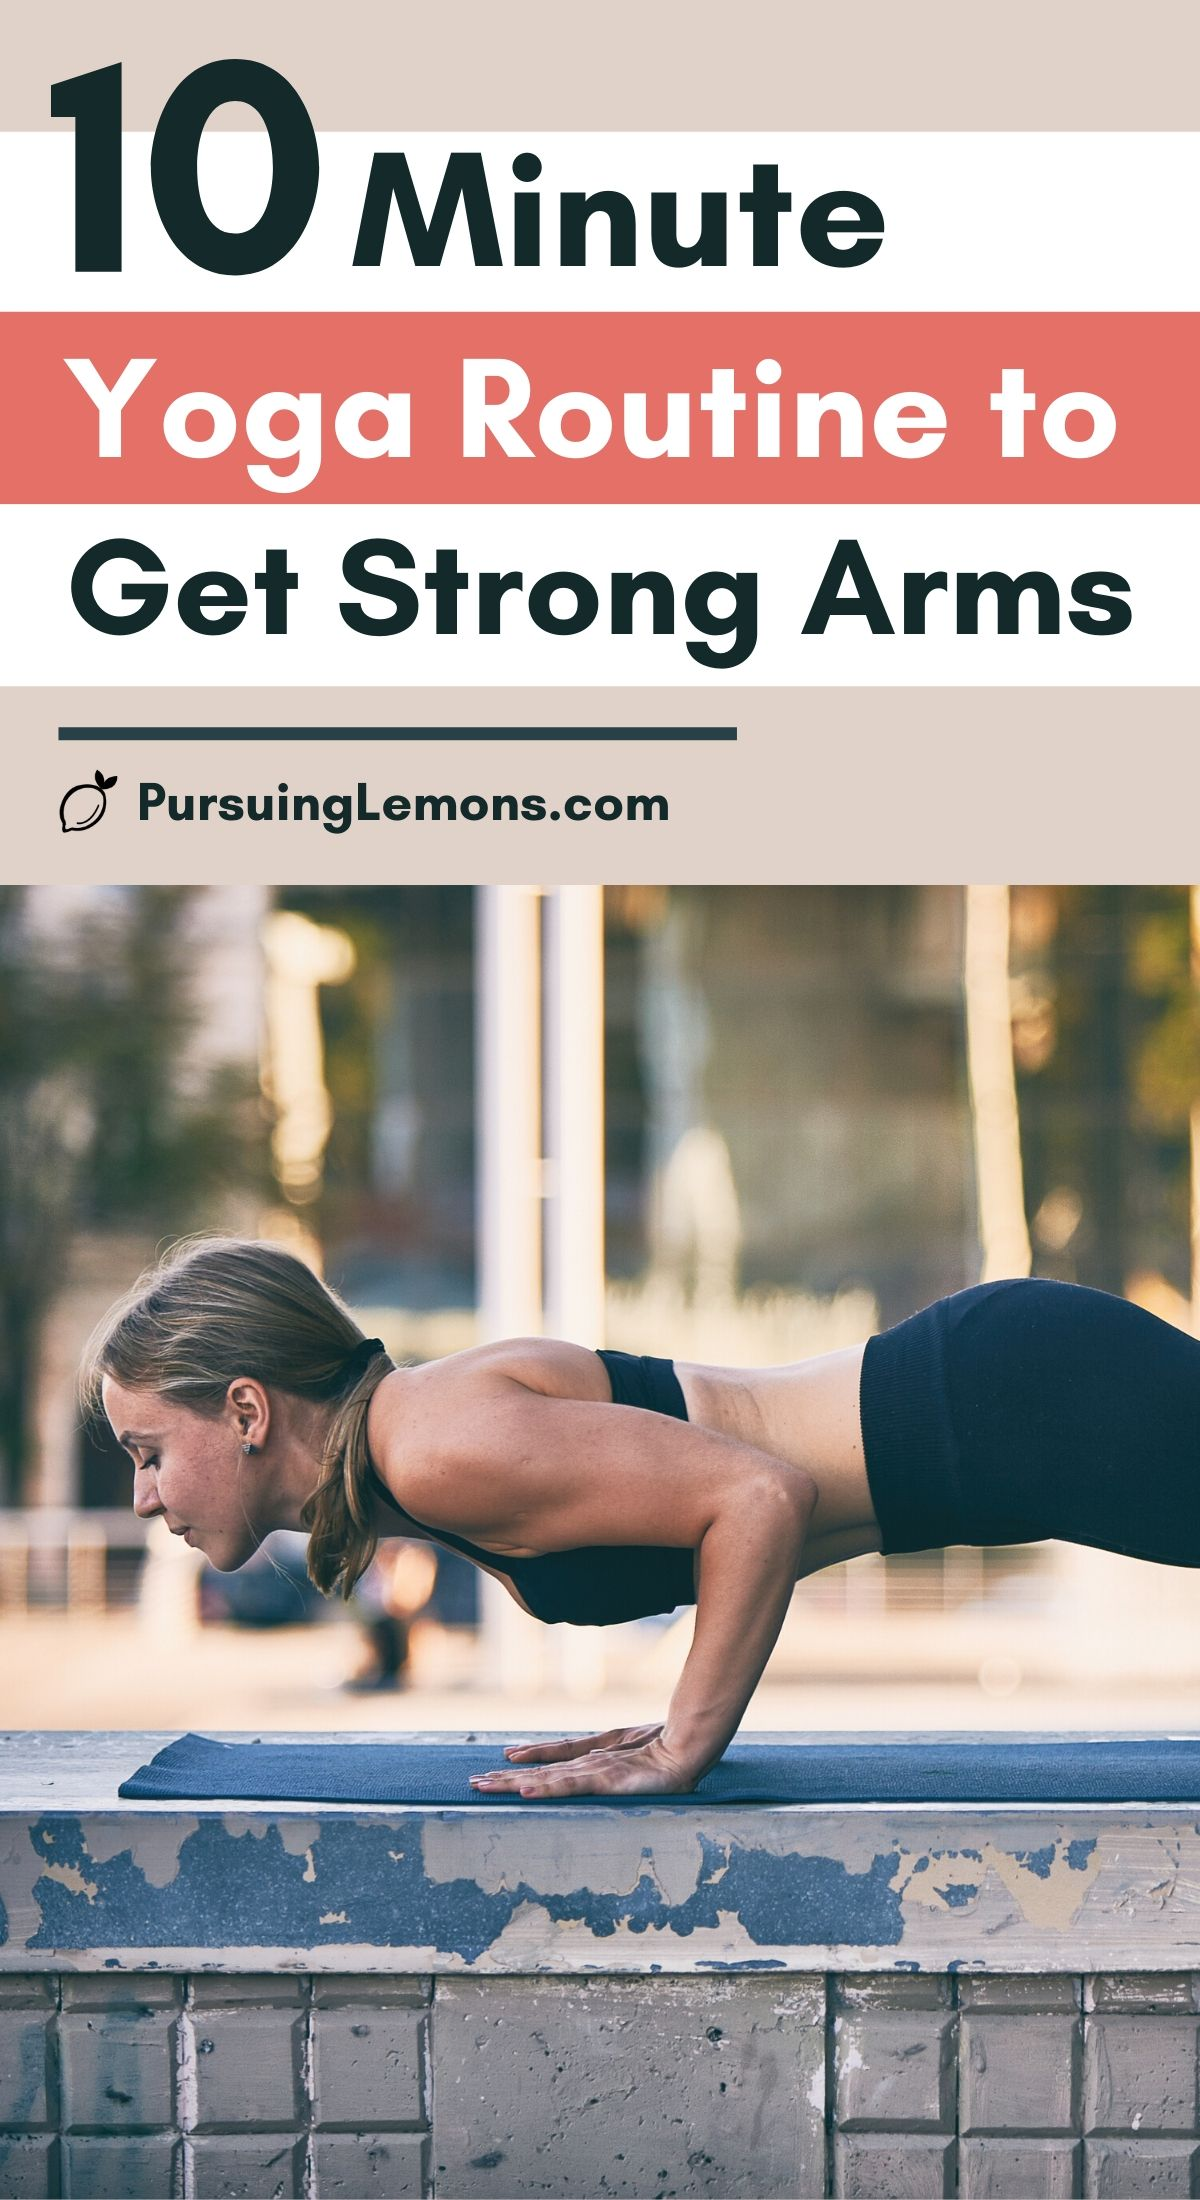 10 Minute Yoga Routine to Get Strong and Toned Arms : Want to tone up your arms? Ready to get rid of your flabby arms? Do this power yoga routine for toned arms every day. This arm yoga workout will help improve arm strength and help you tone up #yogaforarms #armworkout #yogaposesforarms